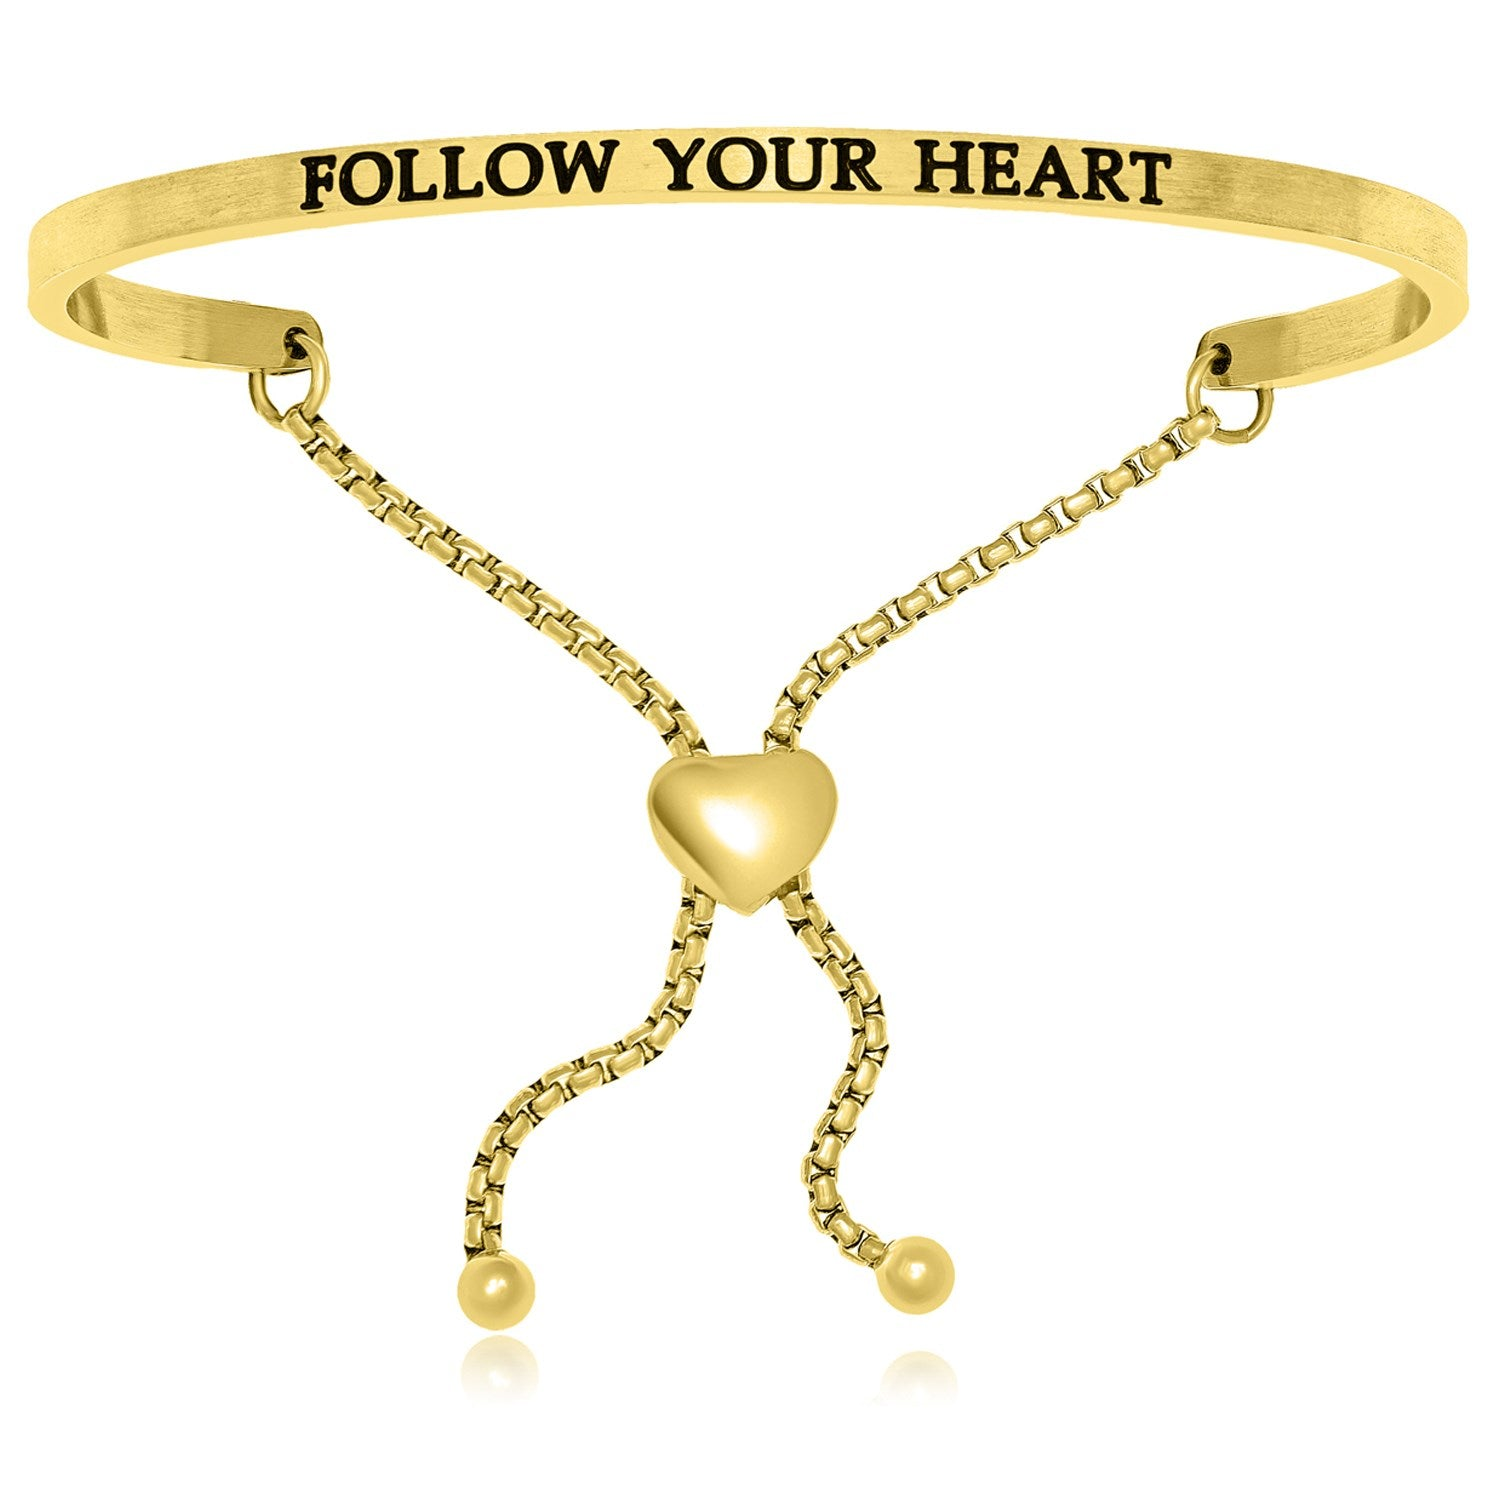 Luxury London Style Original Yellow Stainless Steel Follow Your Heart Adjustable Bracelet